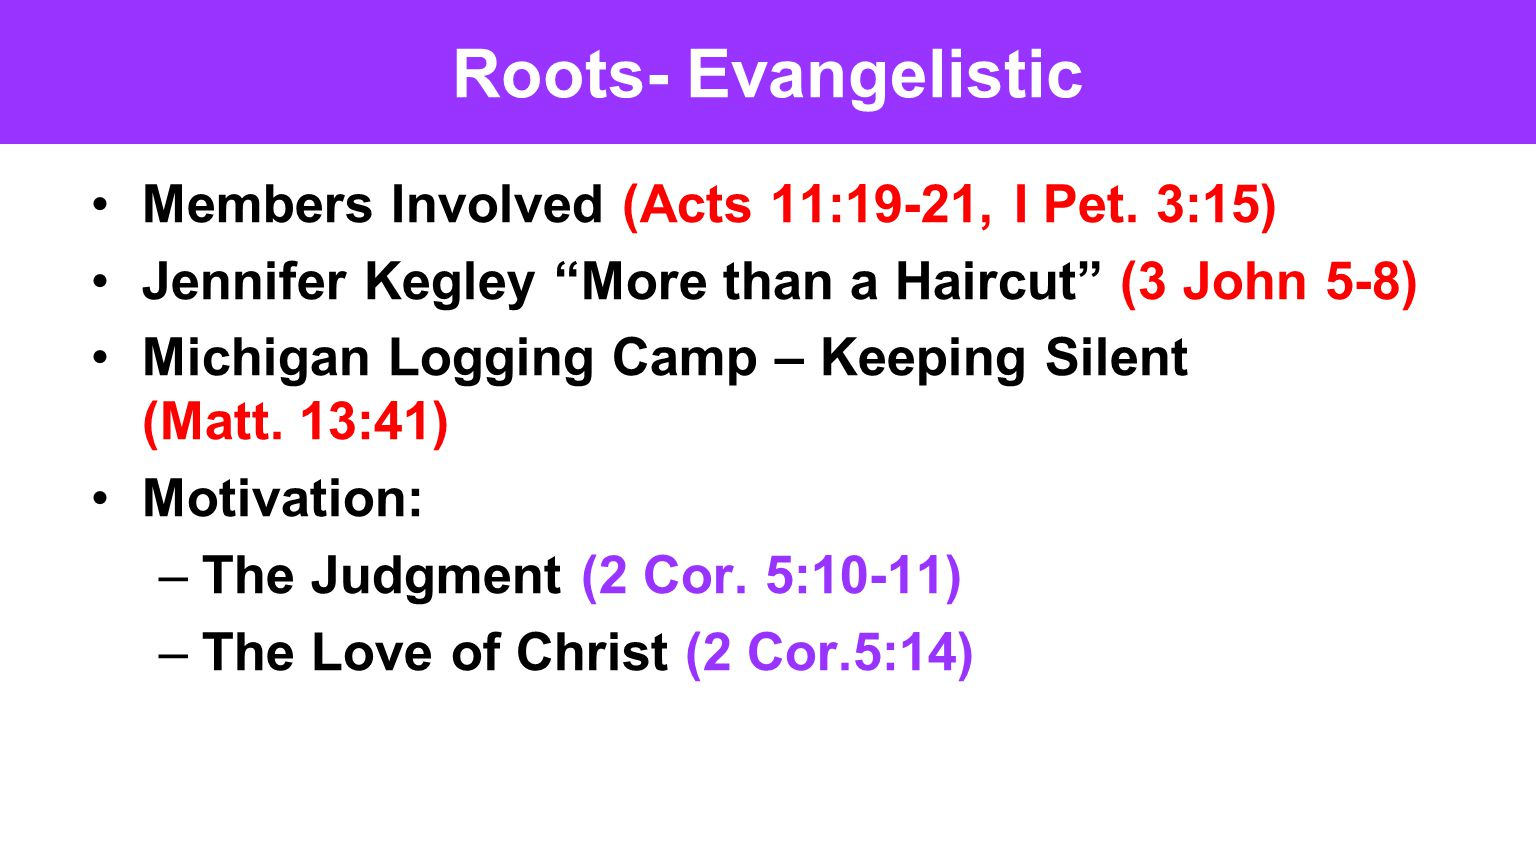 Roots- Evangelistic Members Involved (Acts 11:19-21, I Pet. 3:15)